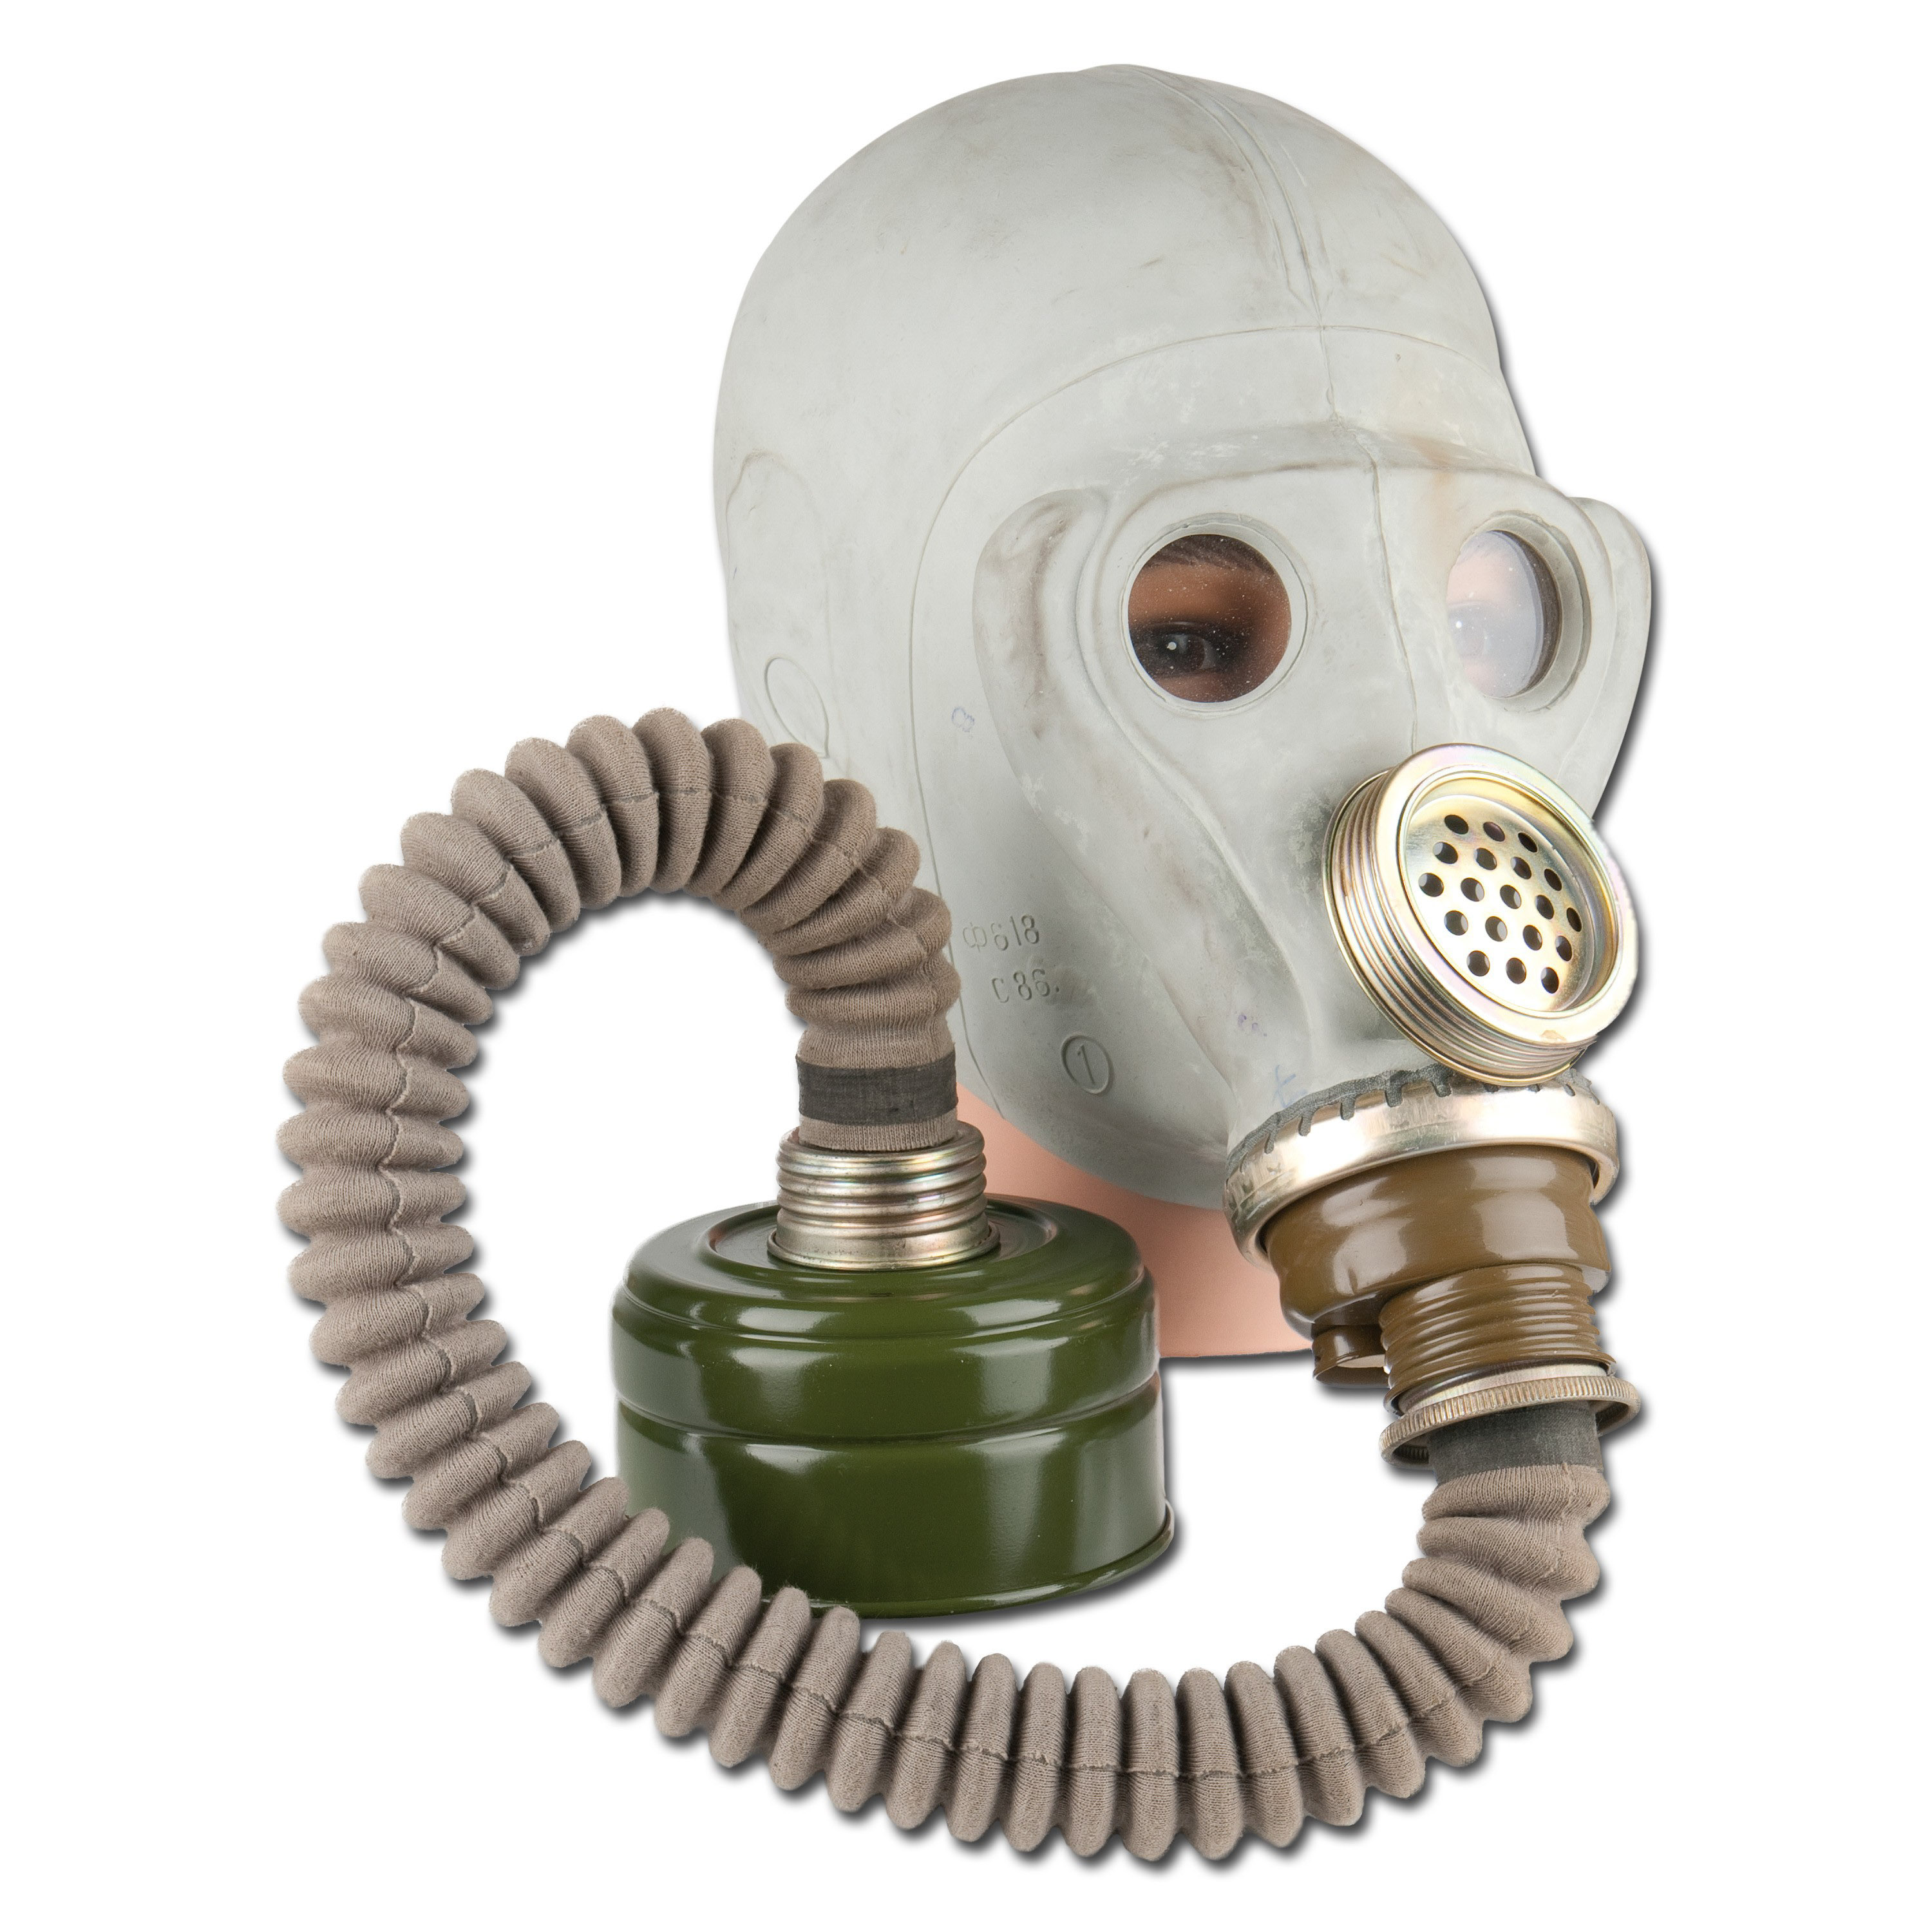 Russian Gas Mask SMS